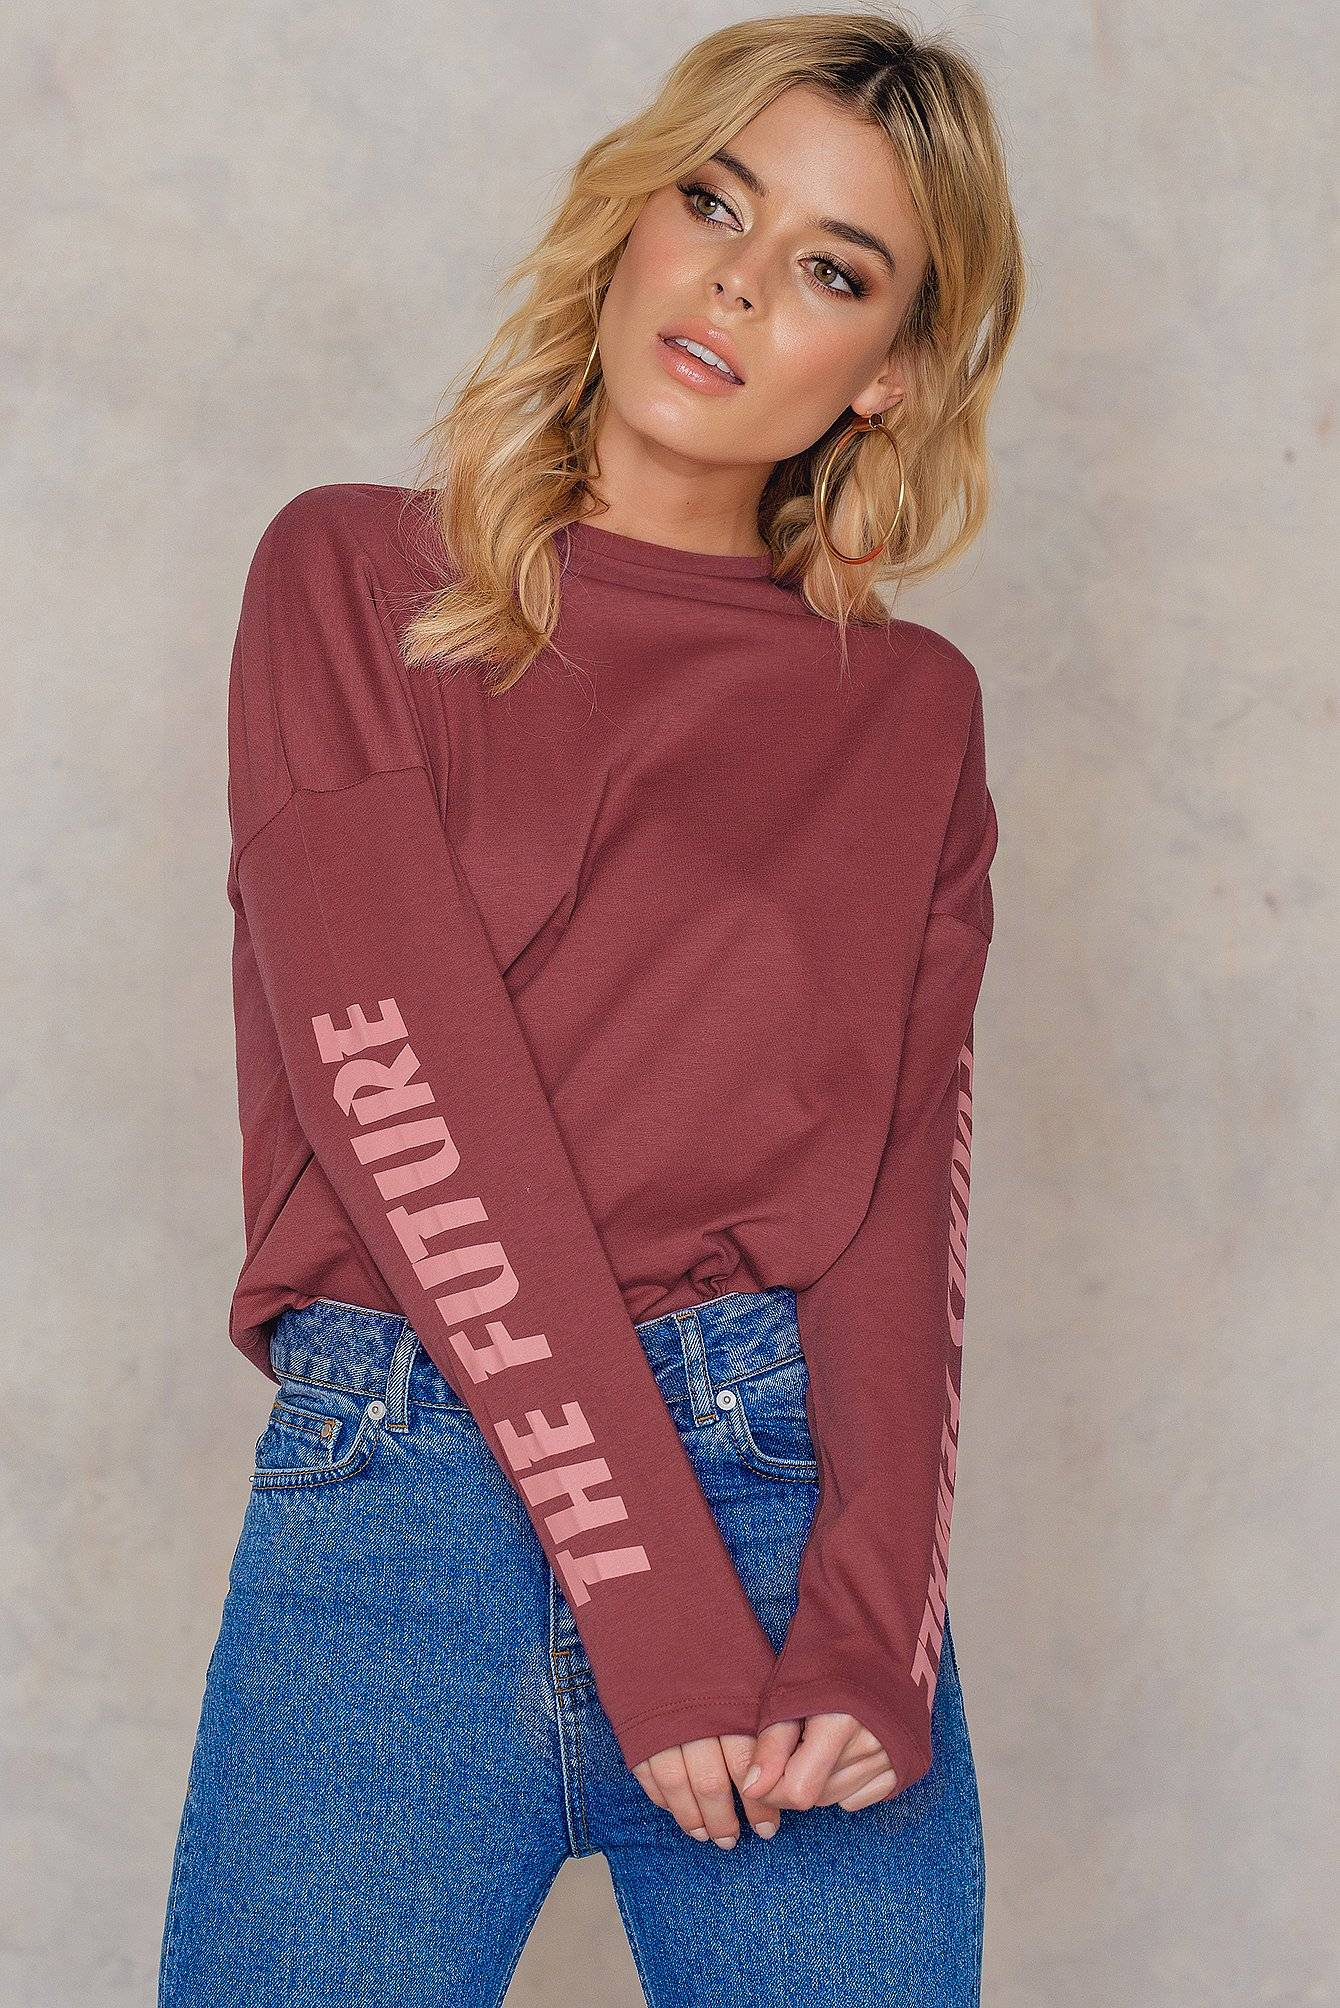 NA-KD The Future Equals Female Sleeves Top - Red